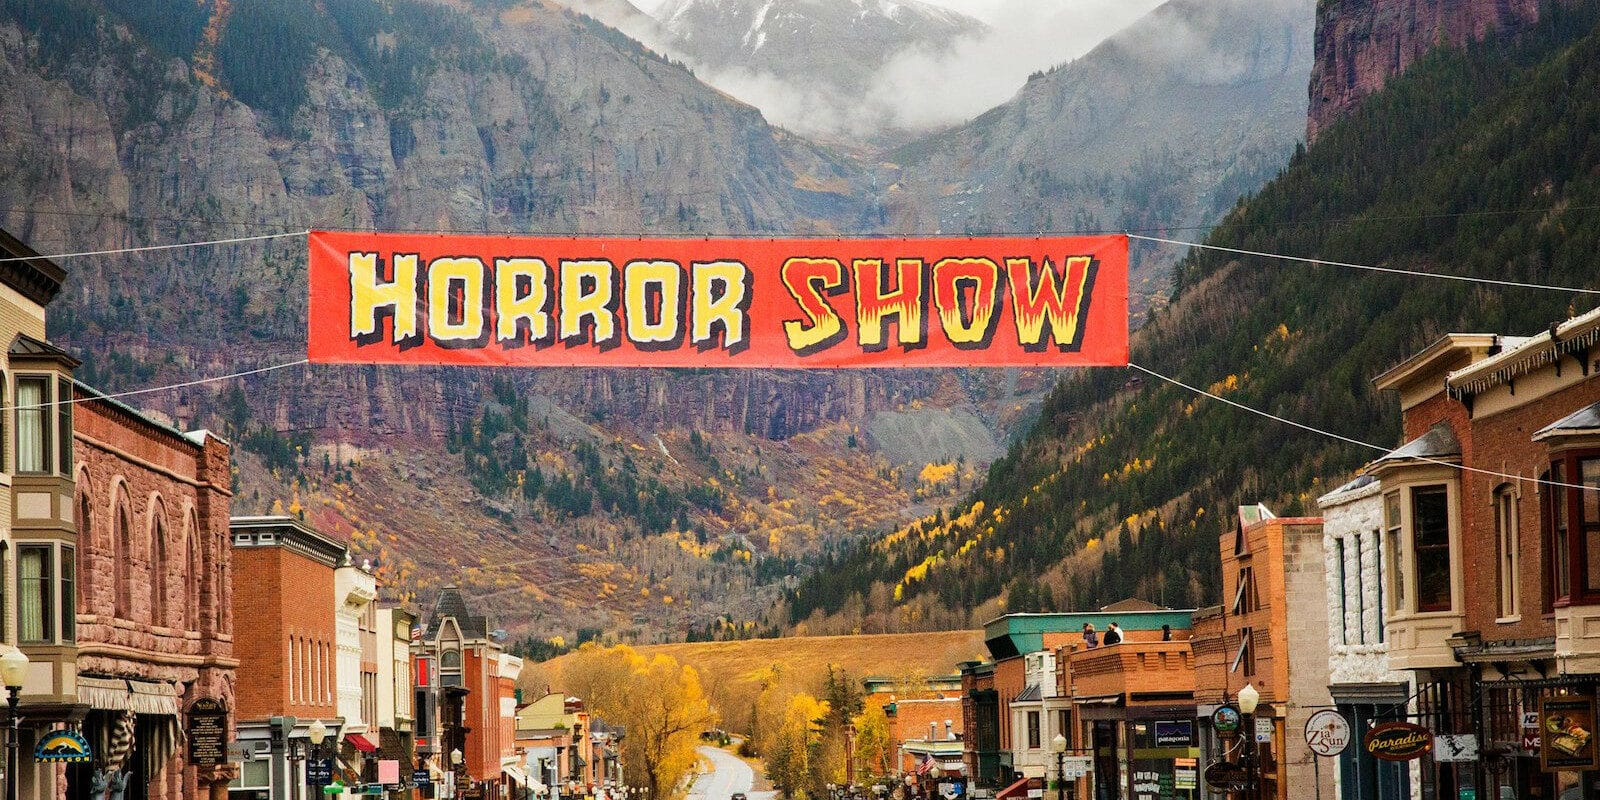 Image of the Horror Show sign in Telluride, Colorado